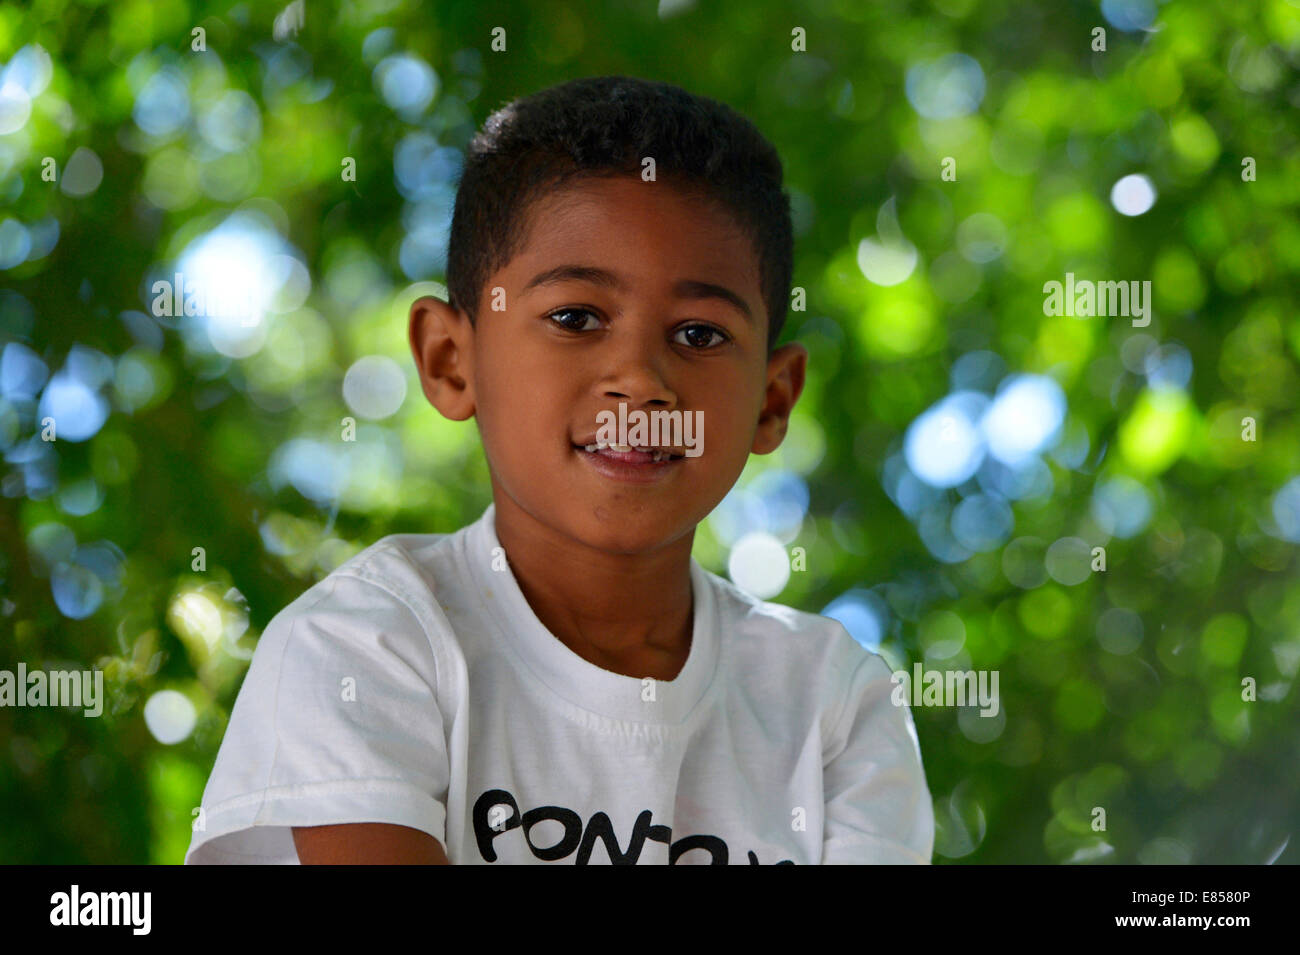 Young, Ponta da Serra, Crato, State of Ceará, Brazil Stock Photo